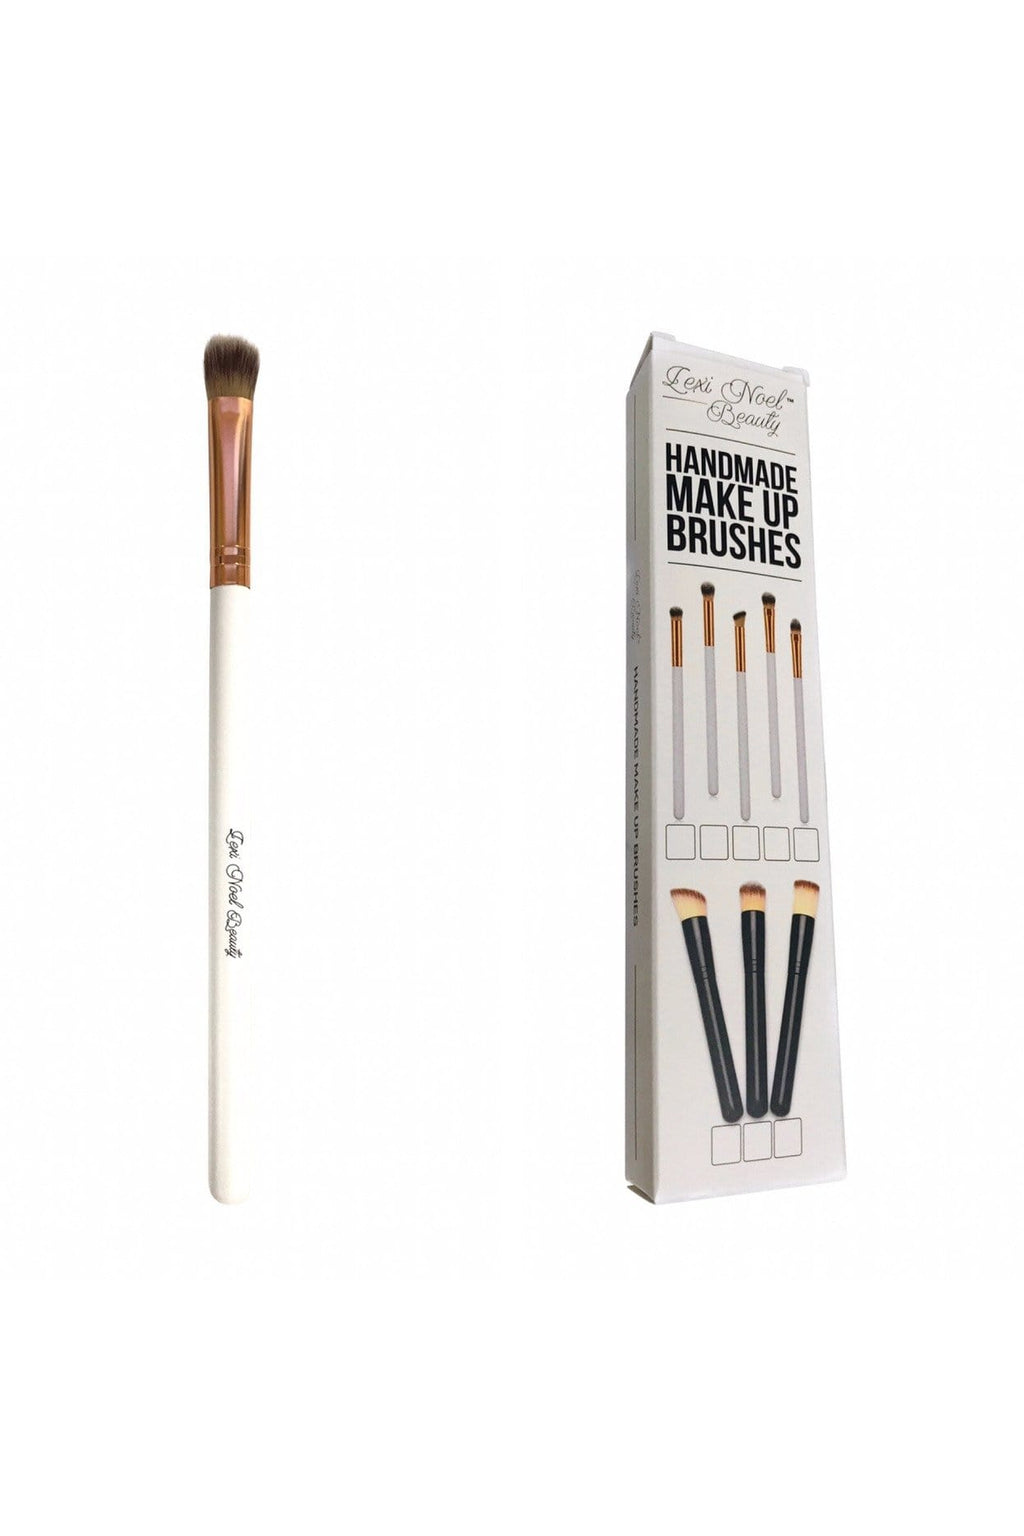 Blending Contour Makeup Brush - Himelhoch's